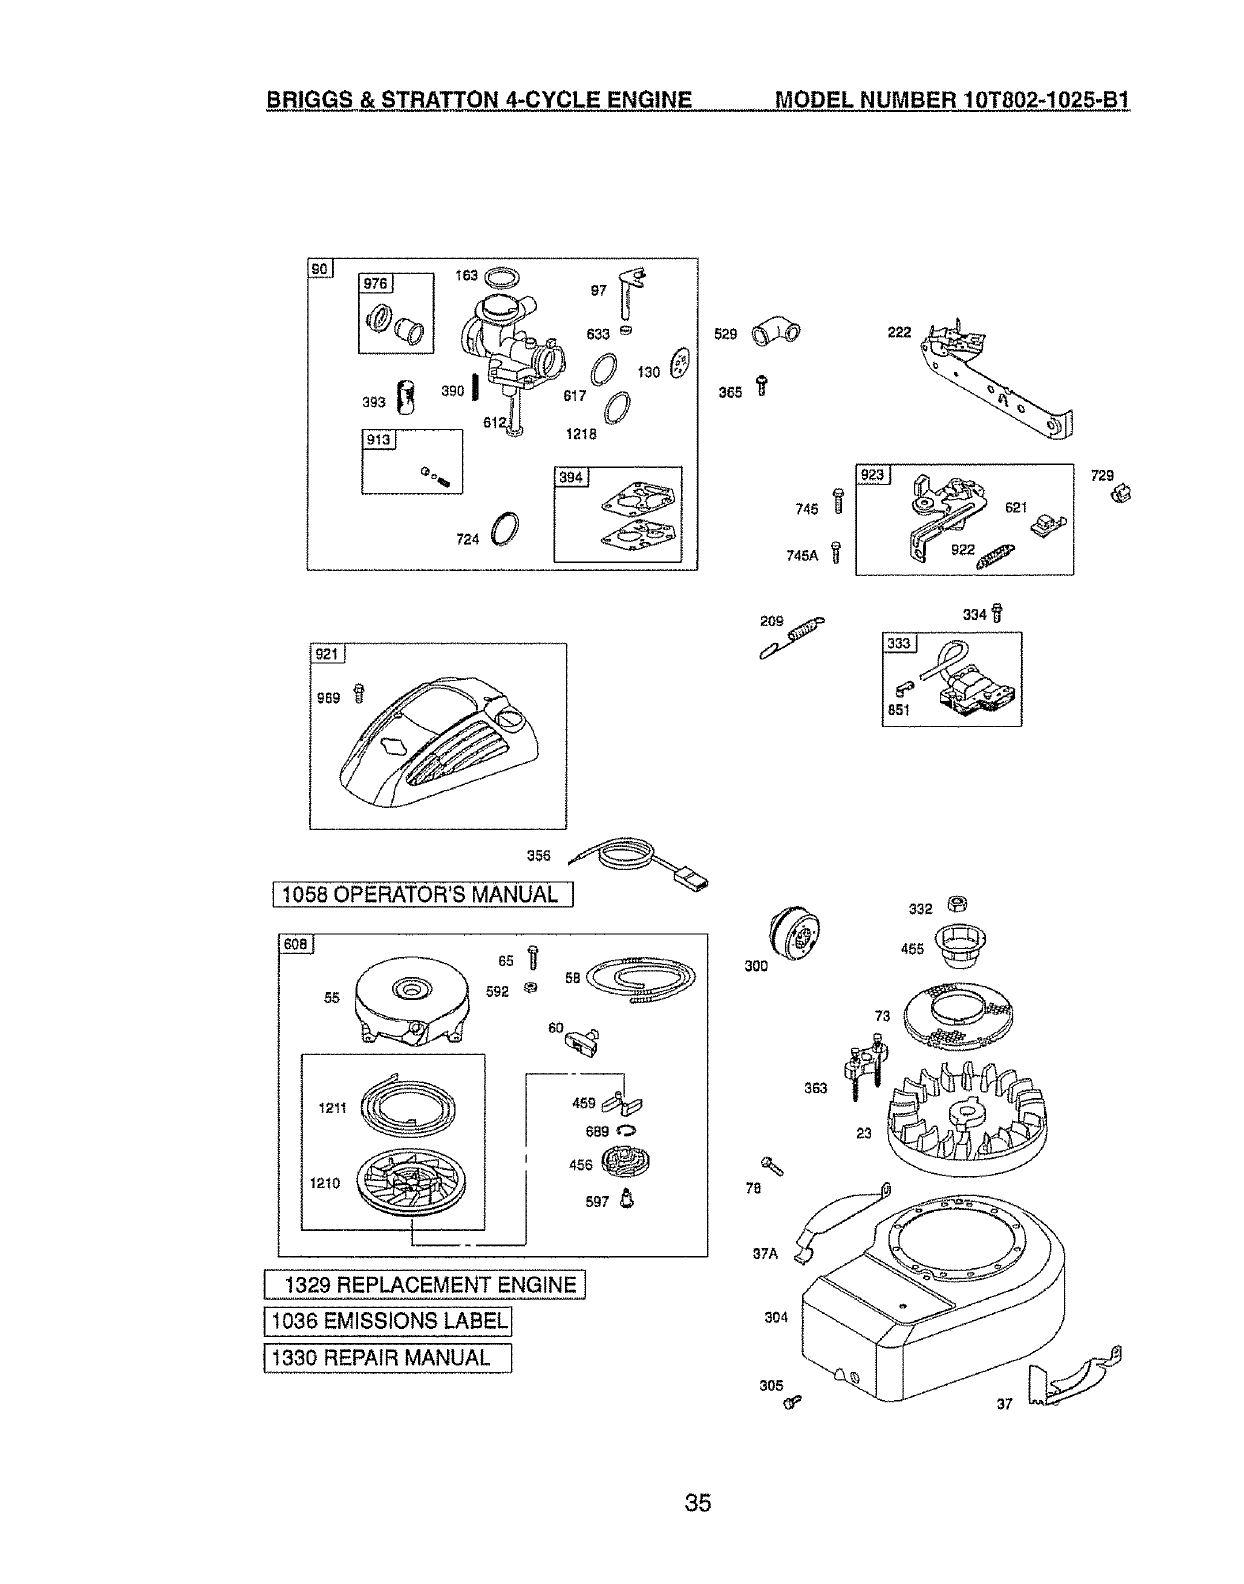 Page 35 of Craftsman Lawn Mower 917.385125 User Guide